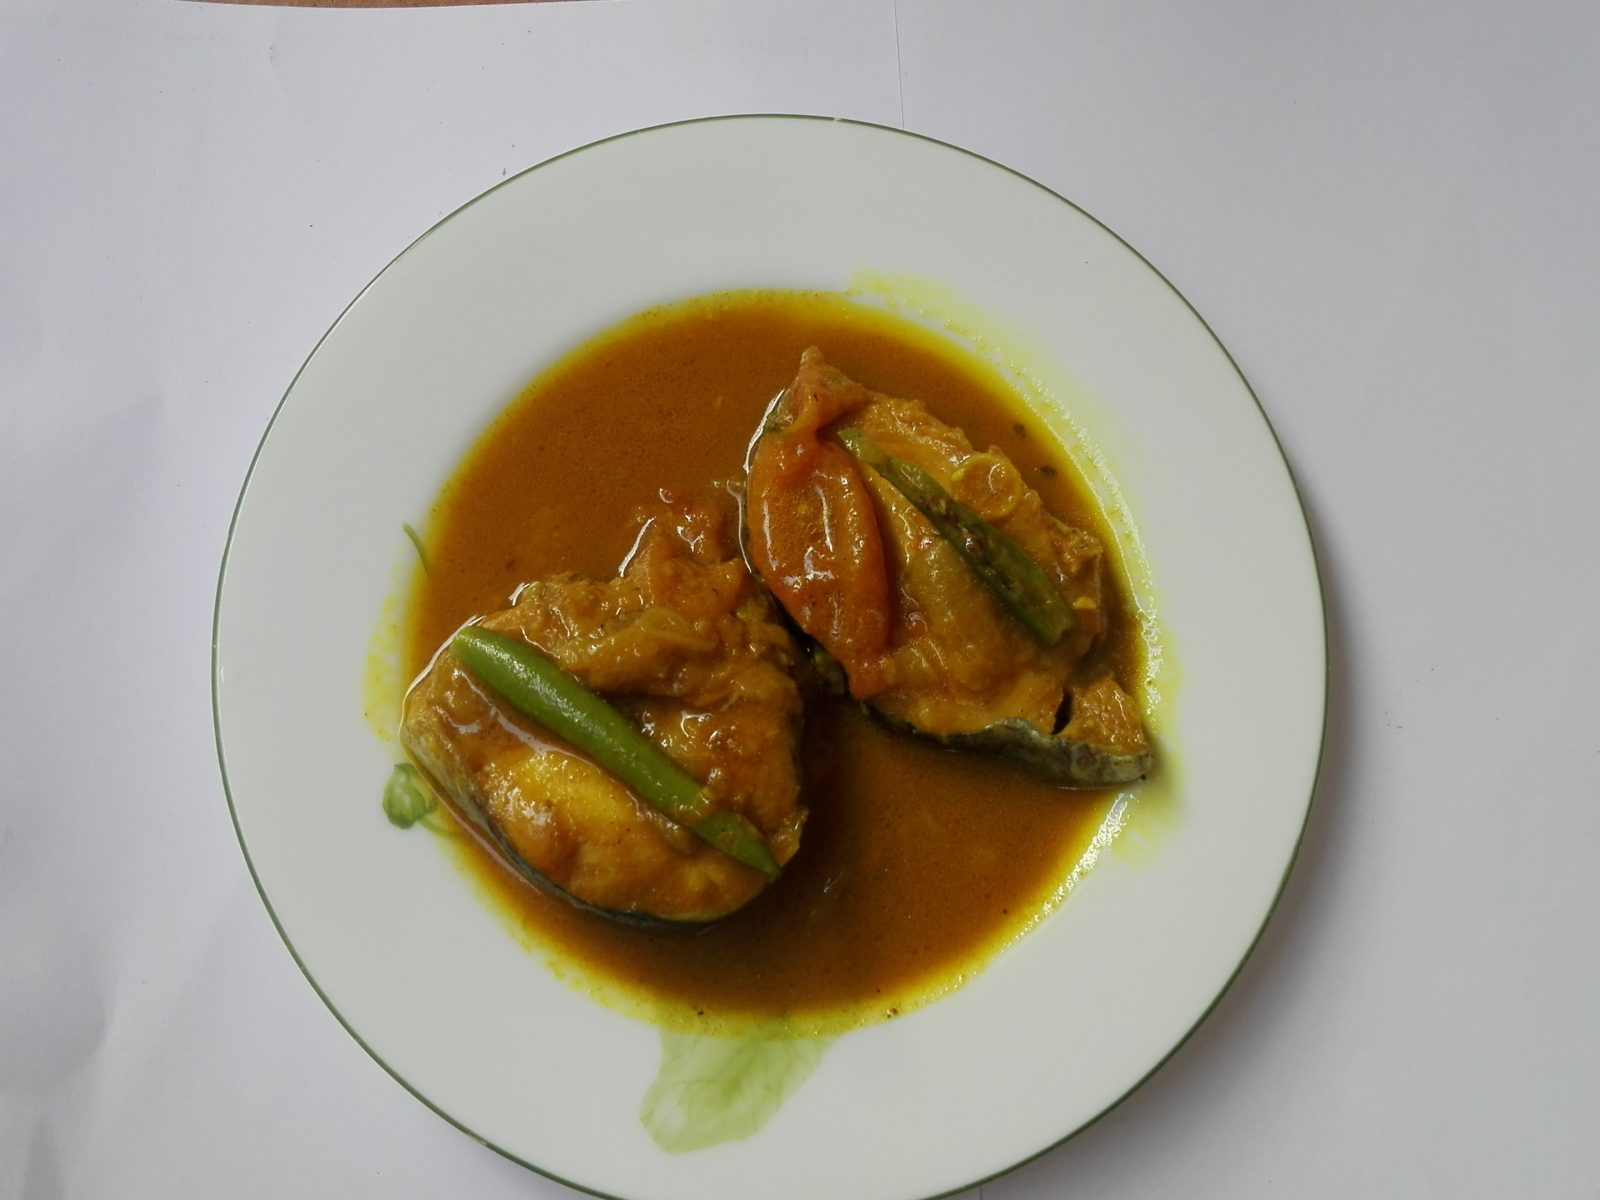 Boyal Fish Curry from Mahbuba's Kitchen